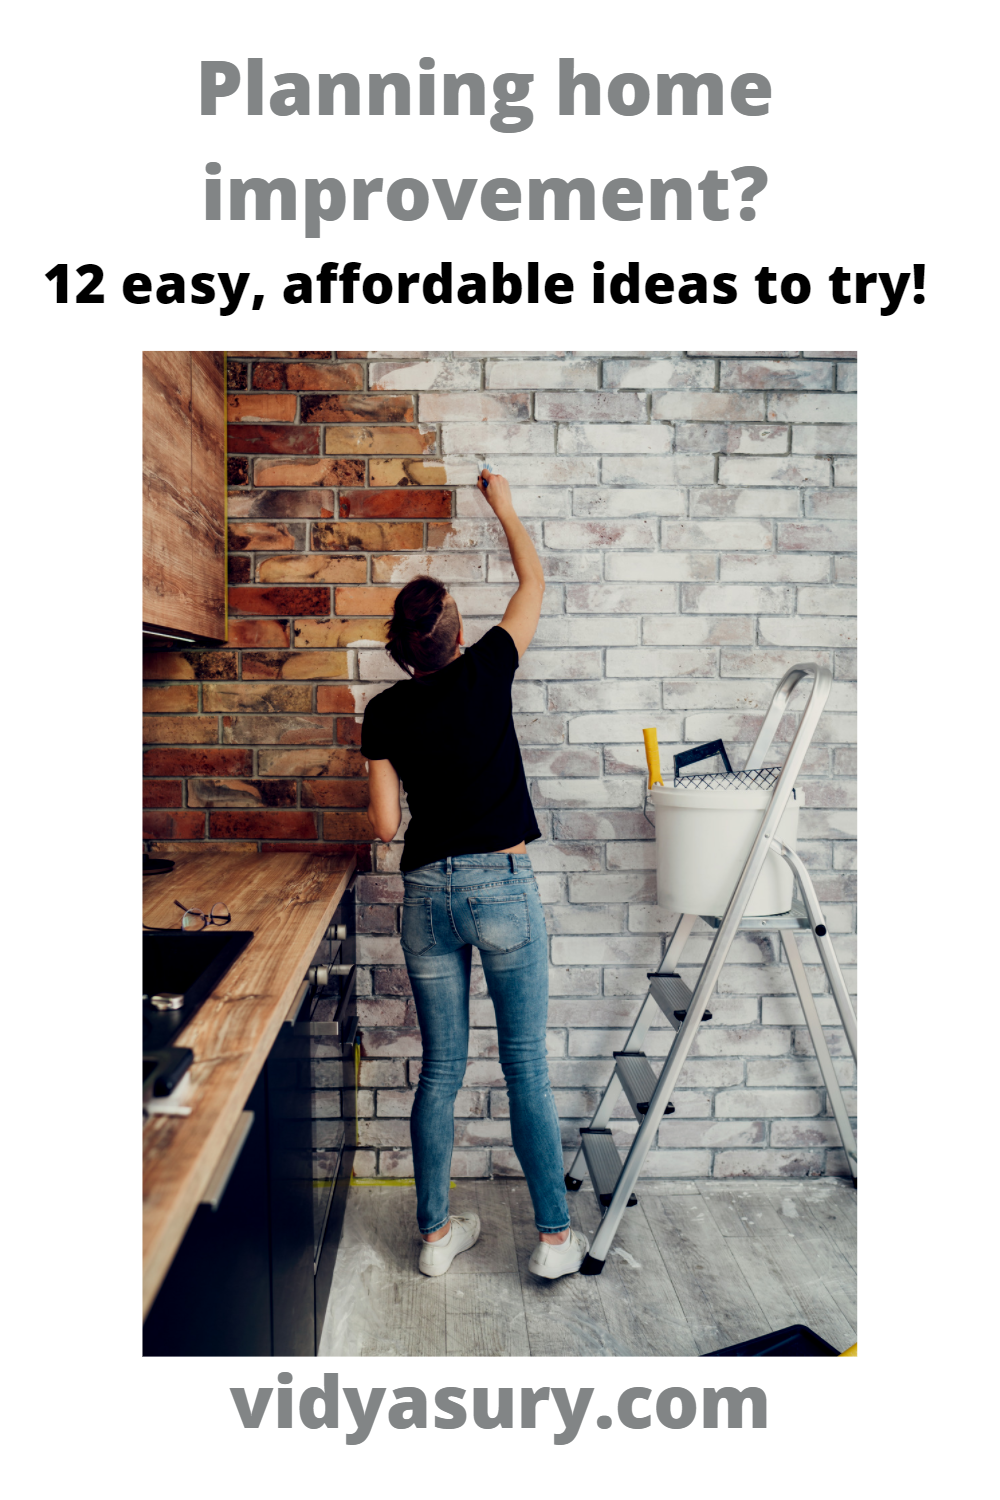 Looking for Home Improvement ideas? 12 easy affordable ideas to try